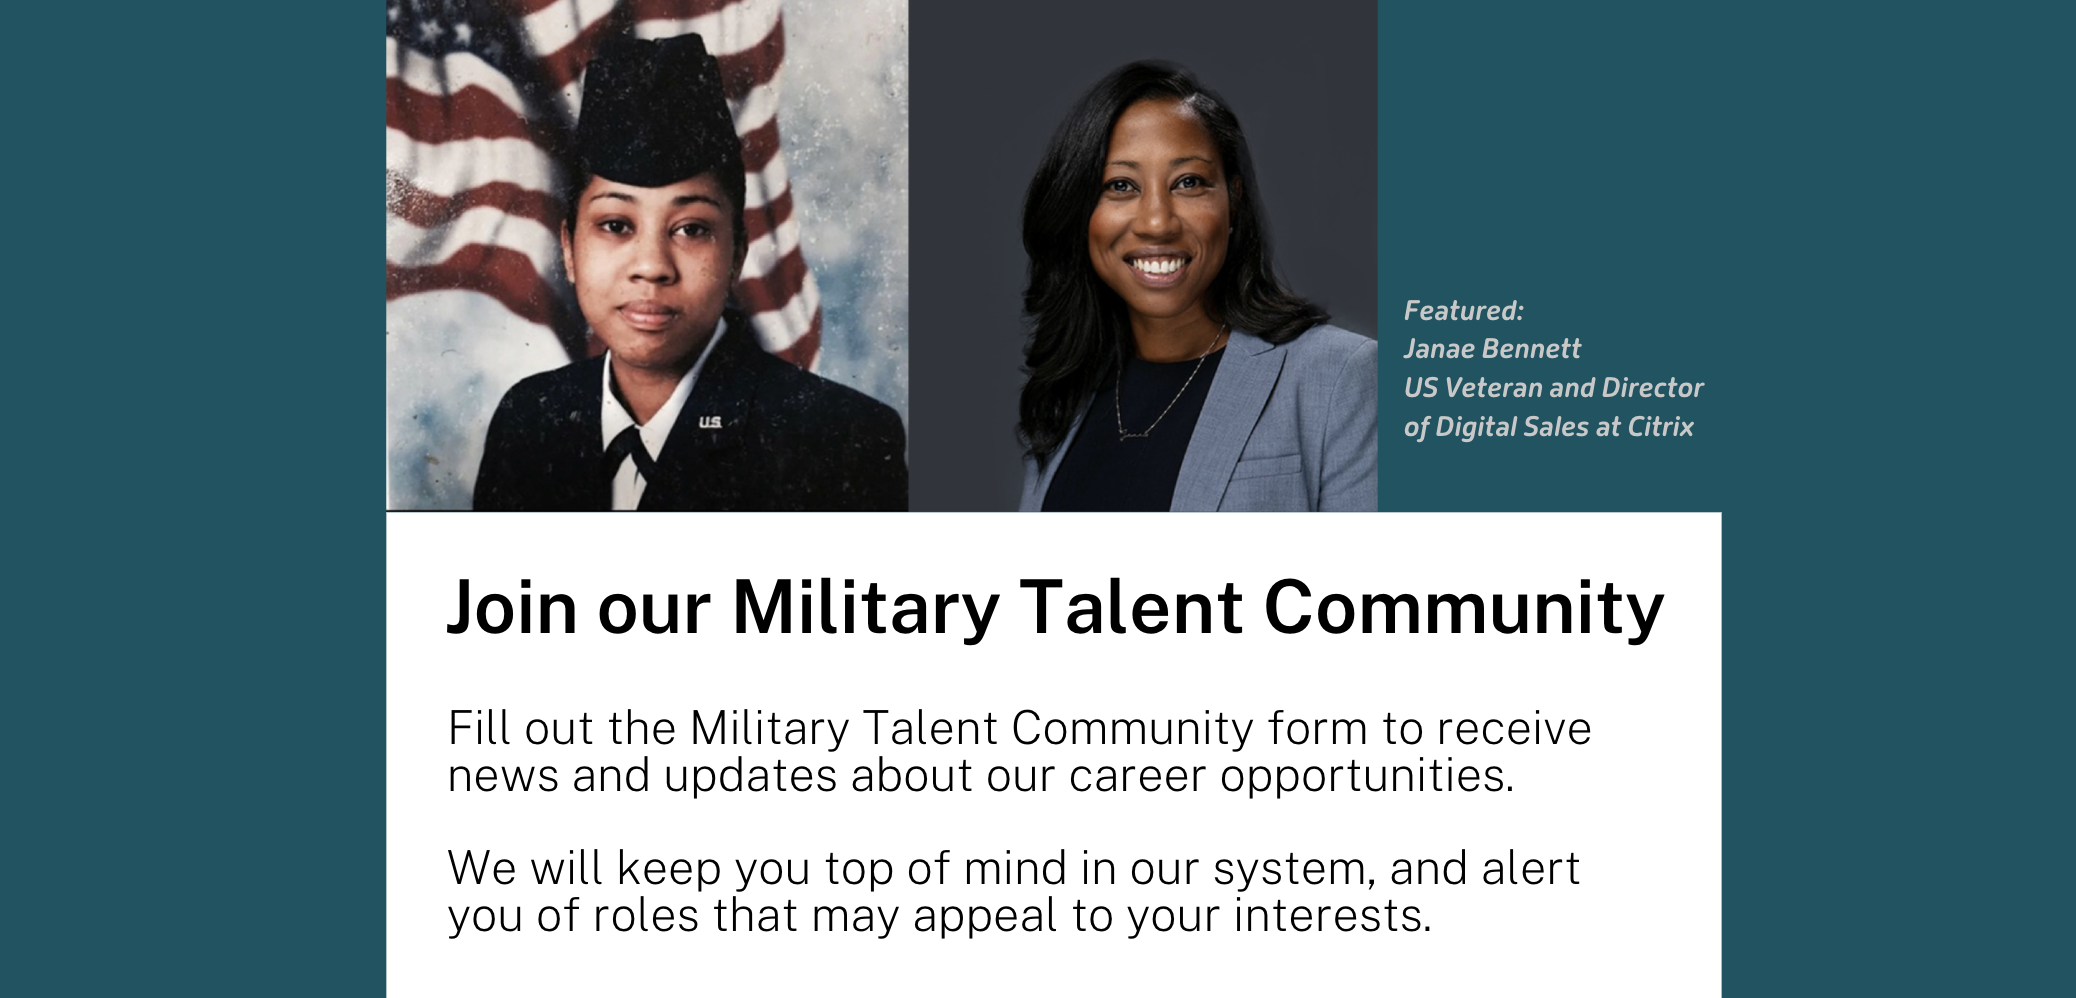 Join our Military Talent Community Fill out the Military Talent Community form to receive news and updates about our career opportunities.  We will keep you top of mind in our system, and alert you of roles that may appeal to your interests.